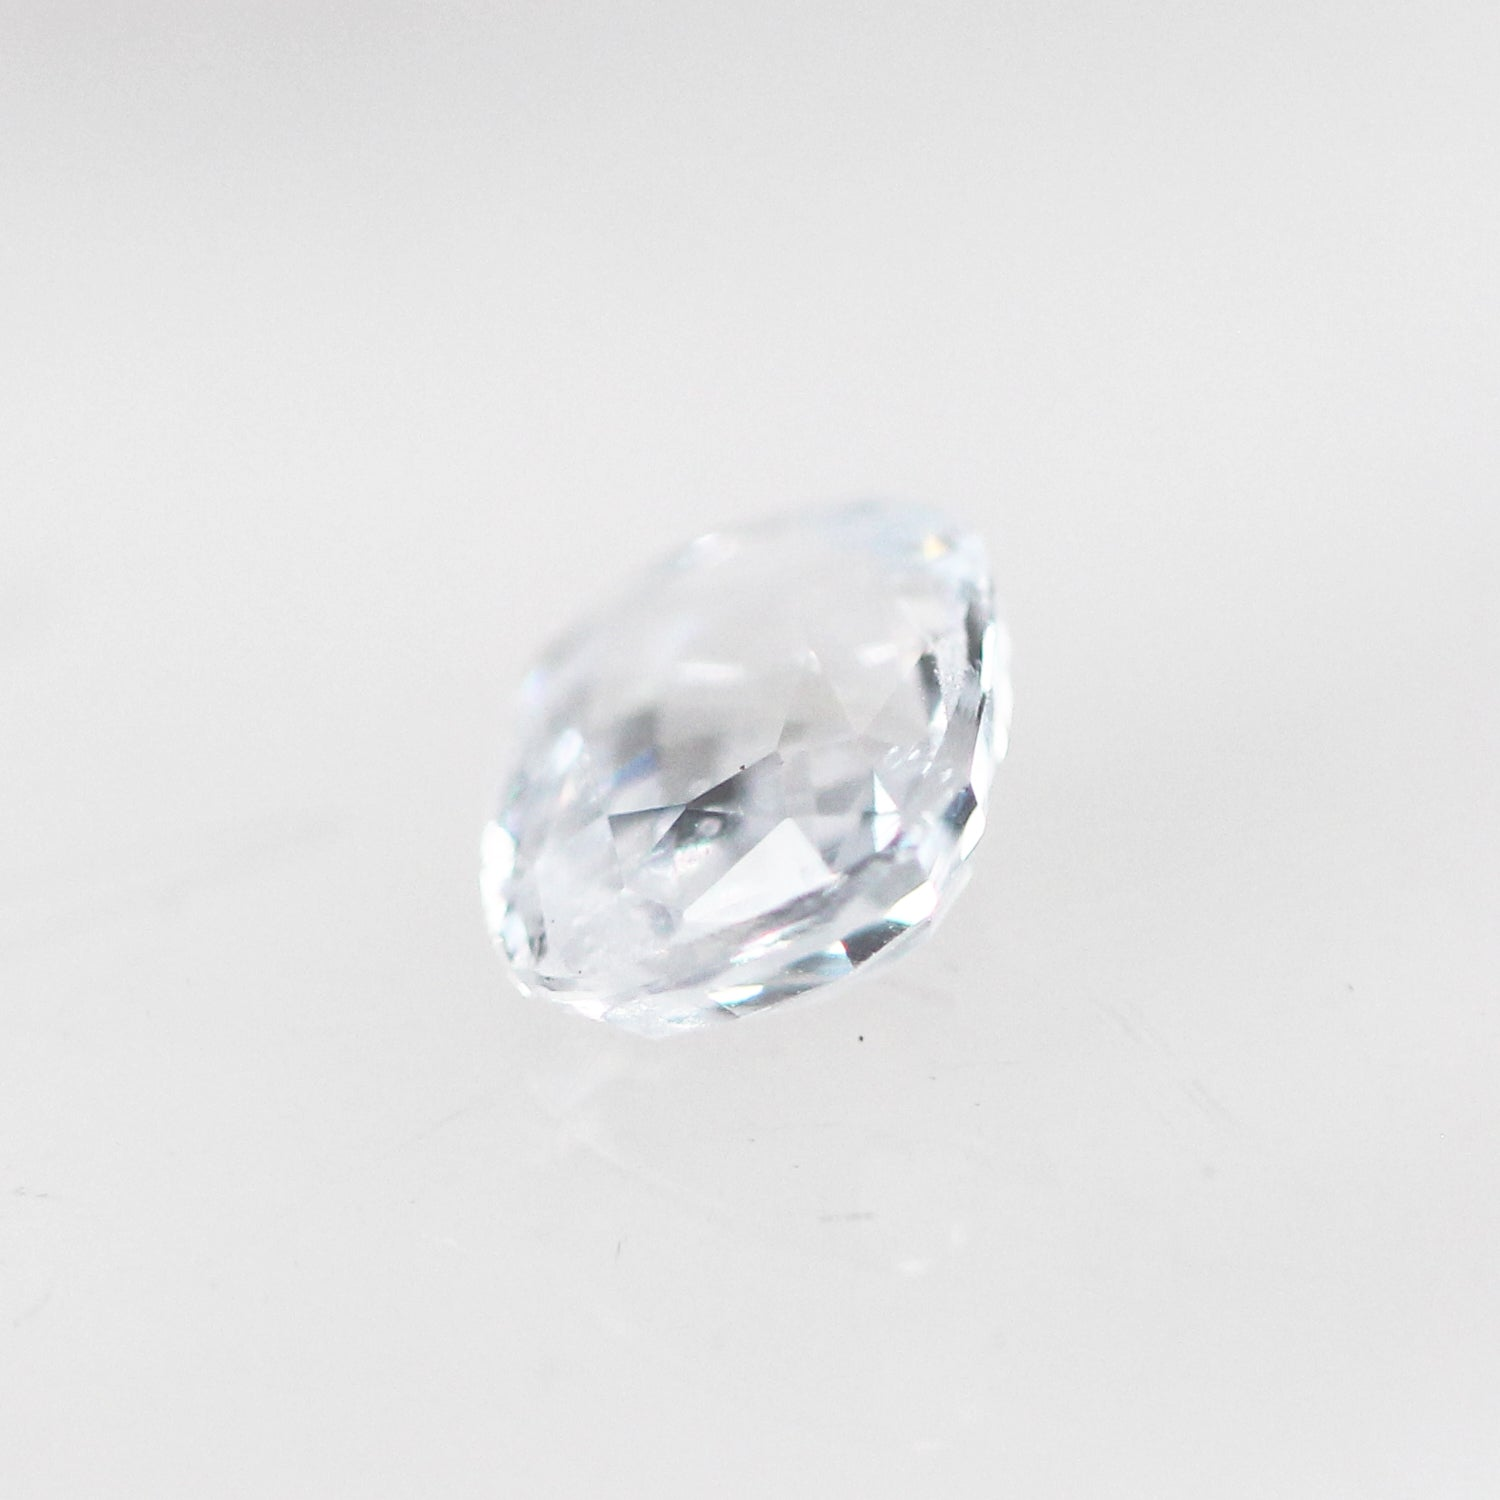 1.85 Carat Cushion Sapphire - Inventory Code CBSA185 - Celestial Diamonds ® by Midwinter Co.